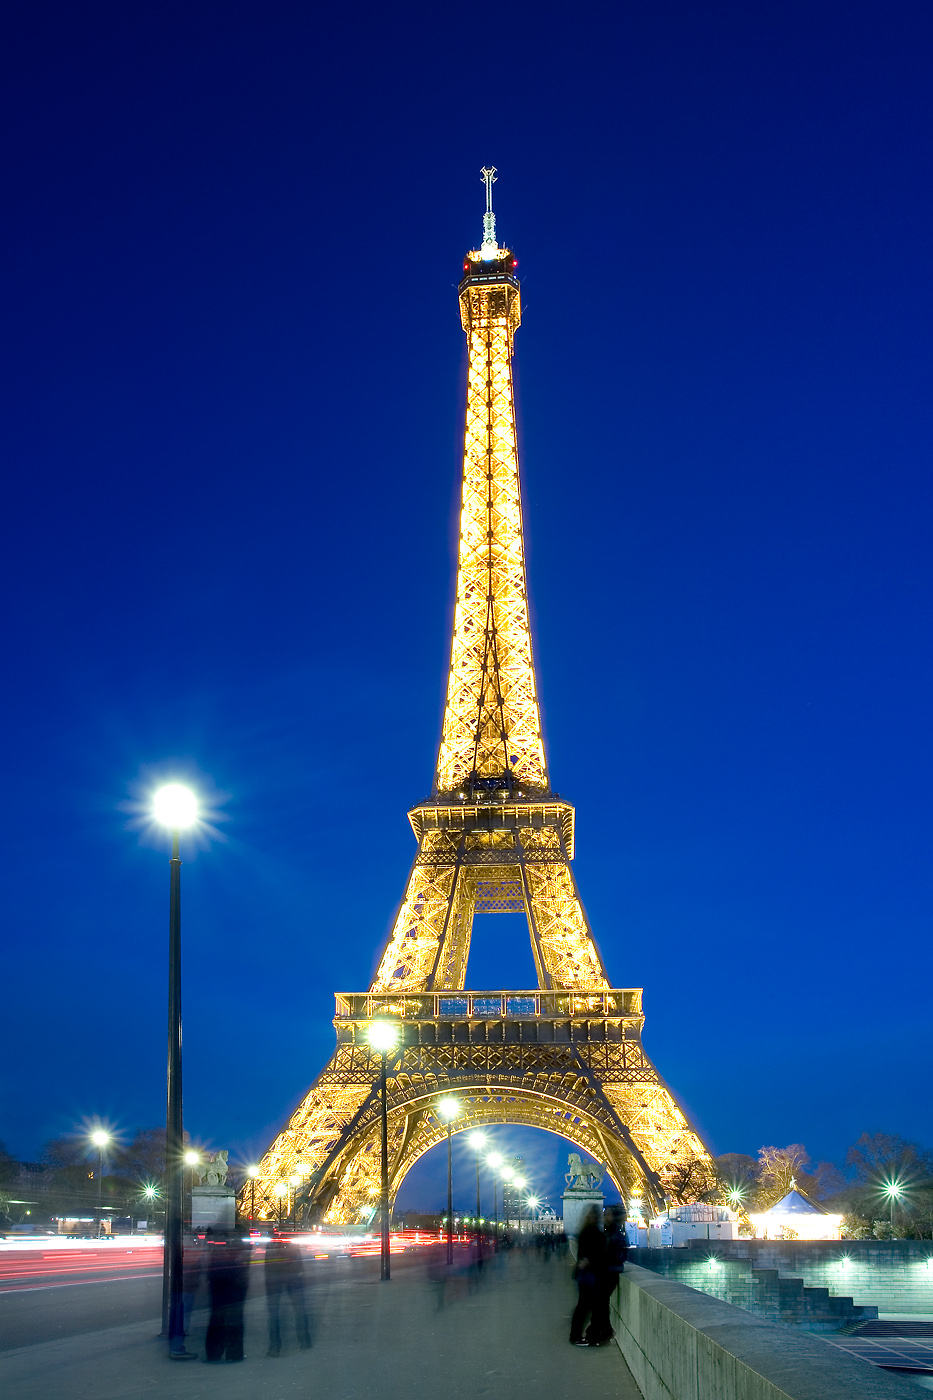 Free Download France Eiffel Tower Hd Wallpaper Background Images 933x1400 For Your Desktop Mobile Tablet Explore 30 Paris France Eiffel Tower Wallpapers Eiffel Tower Paris France Wallpaper Paris France